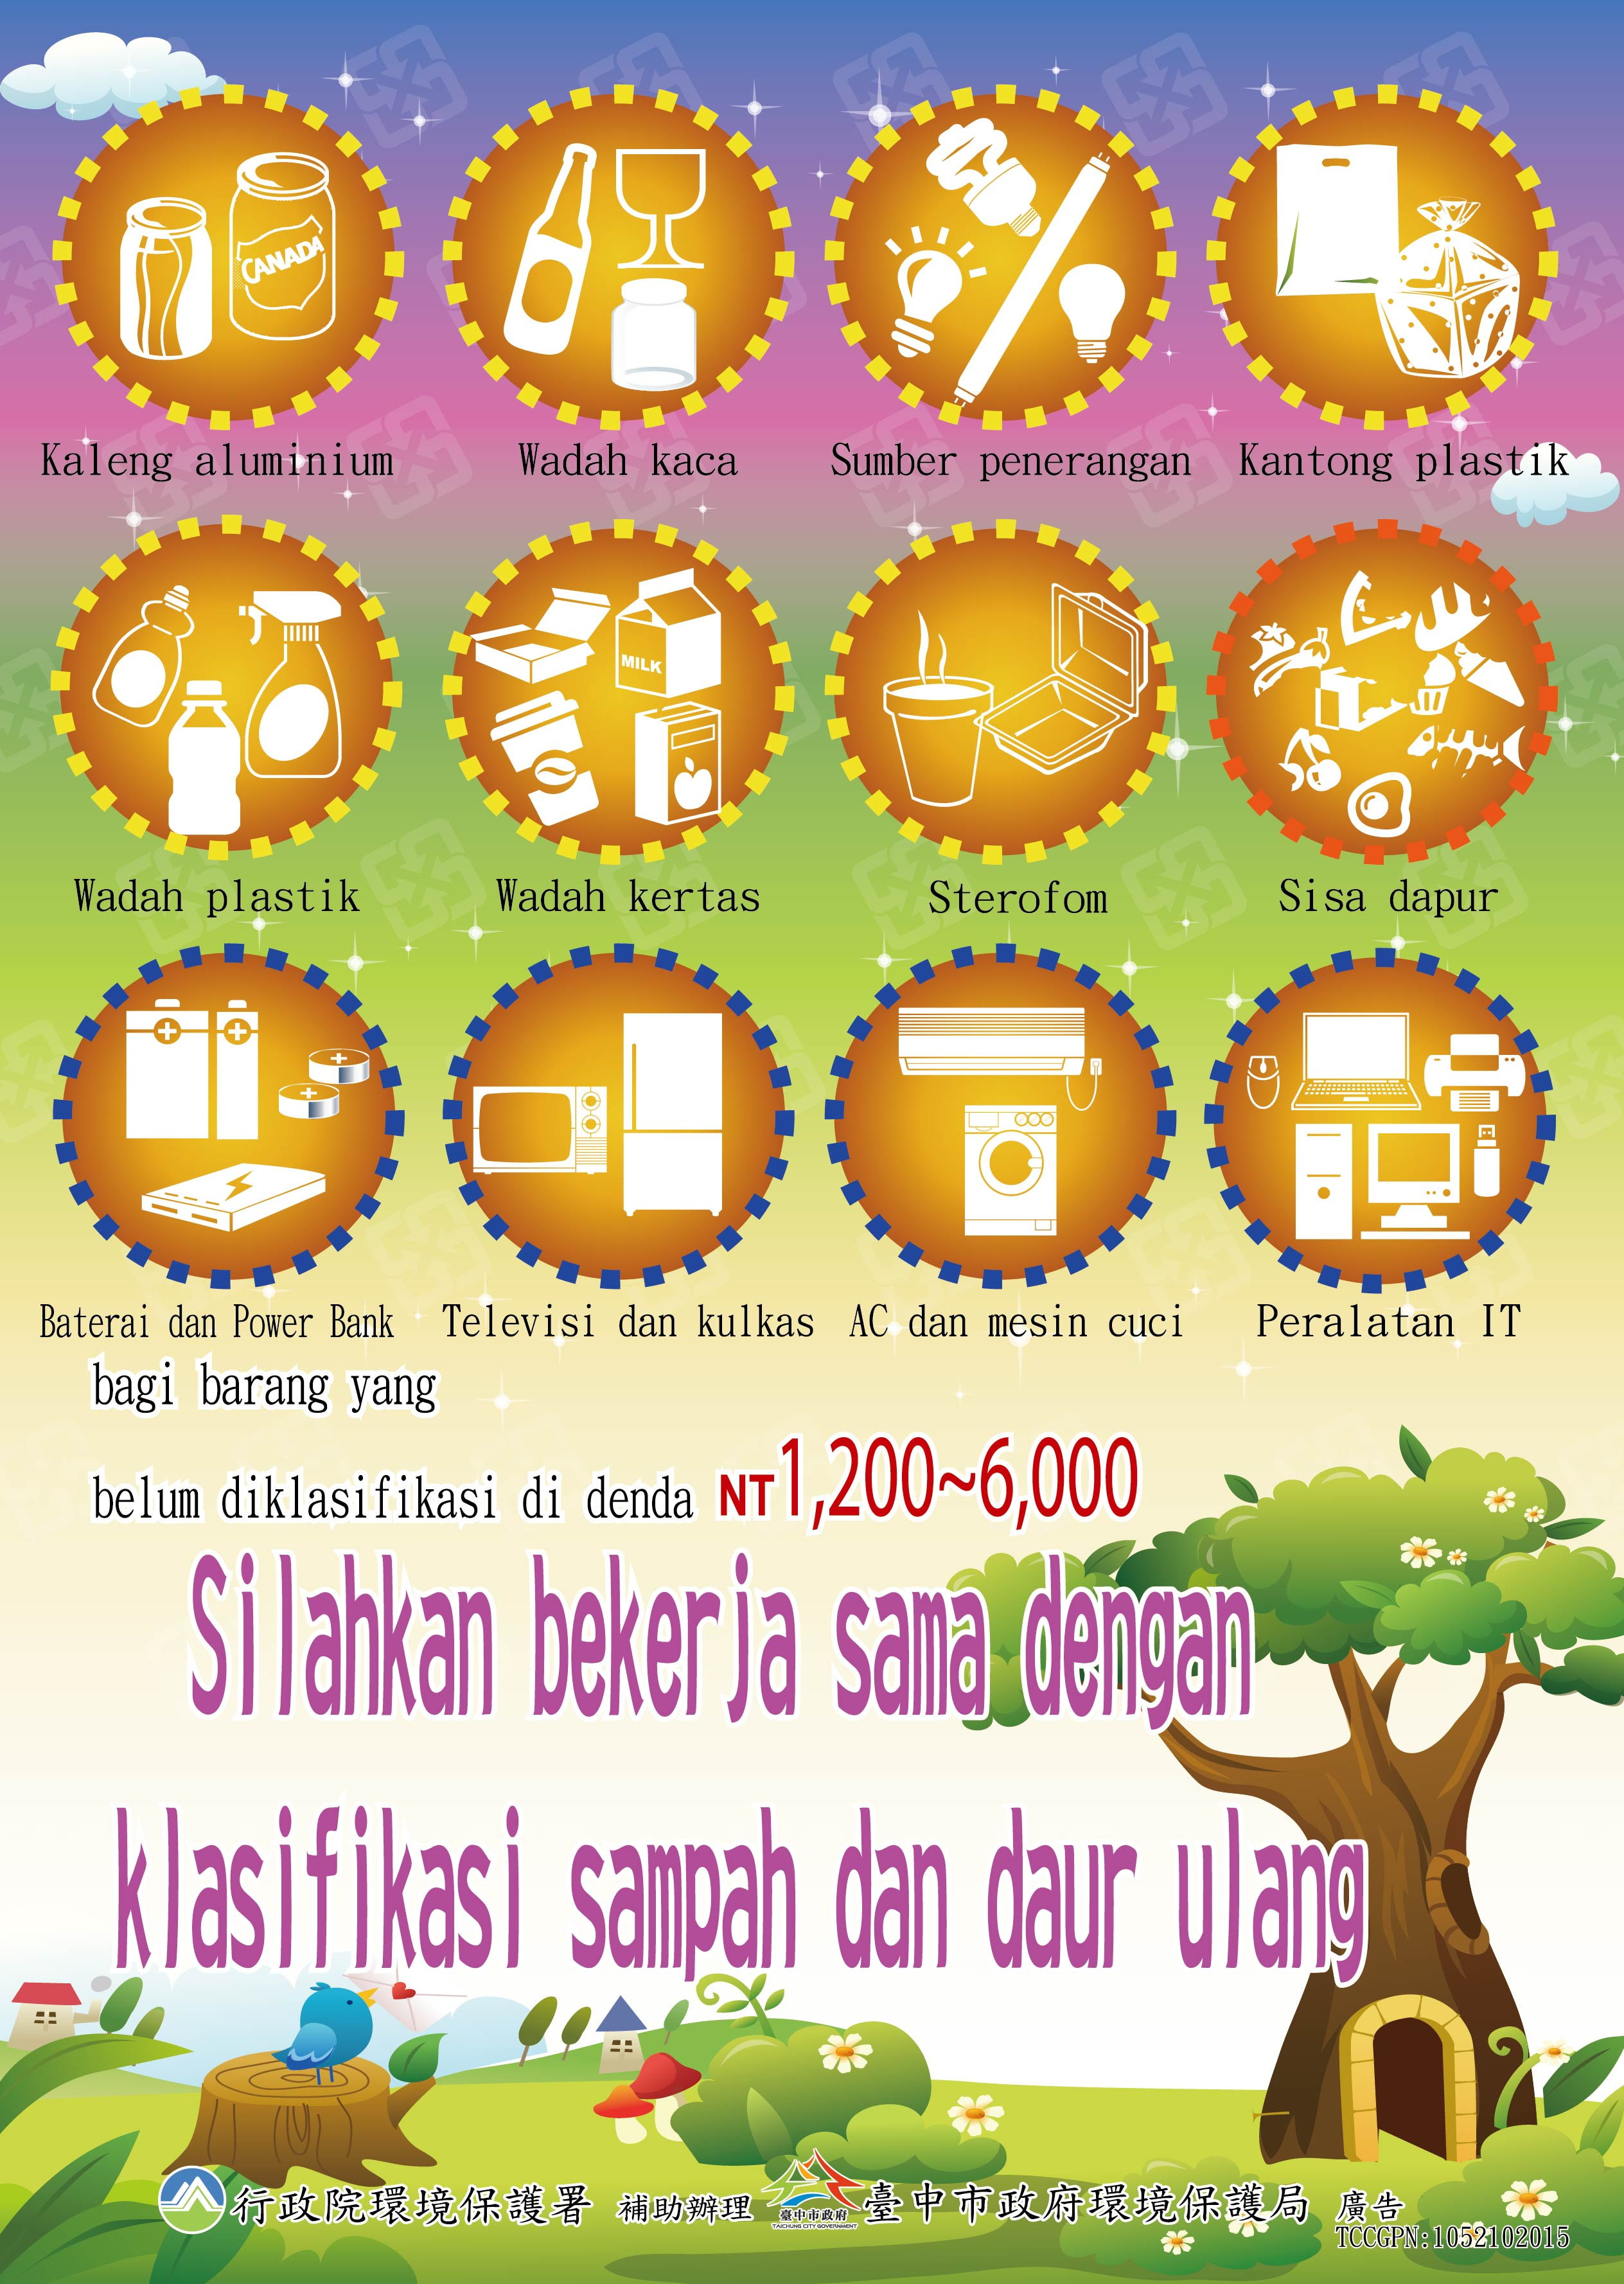 Pleasw sort garbage for recycling.(Indonesian)